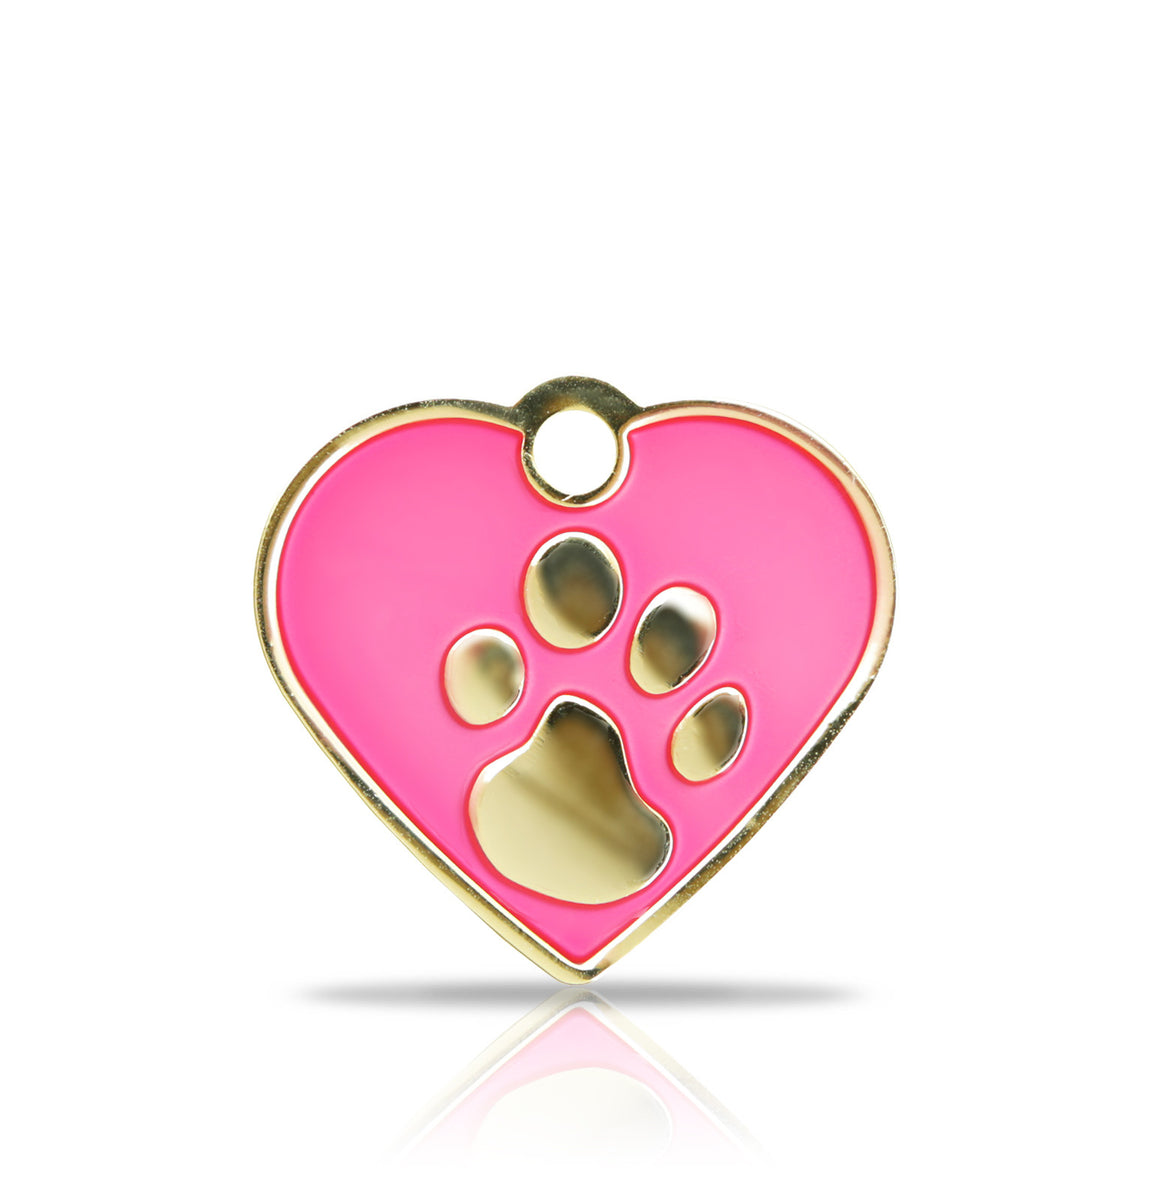 TaggIT Elegance Small Heart Pink & Gold iMarc Engraving Tag